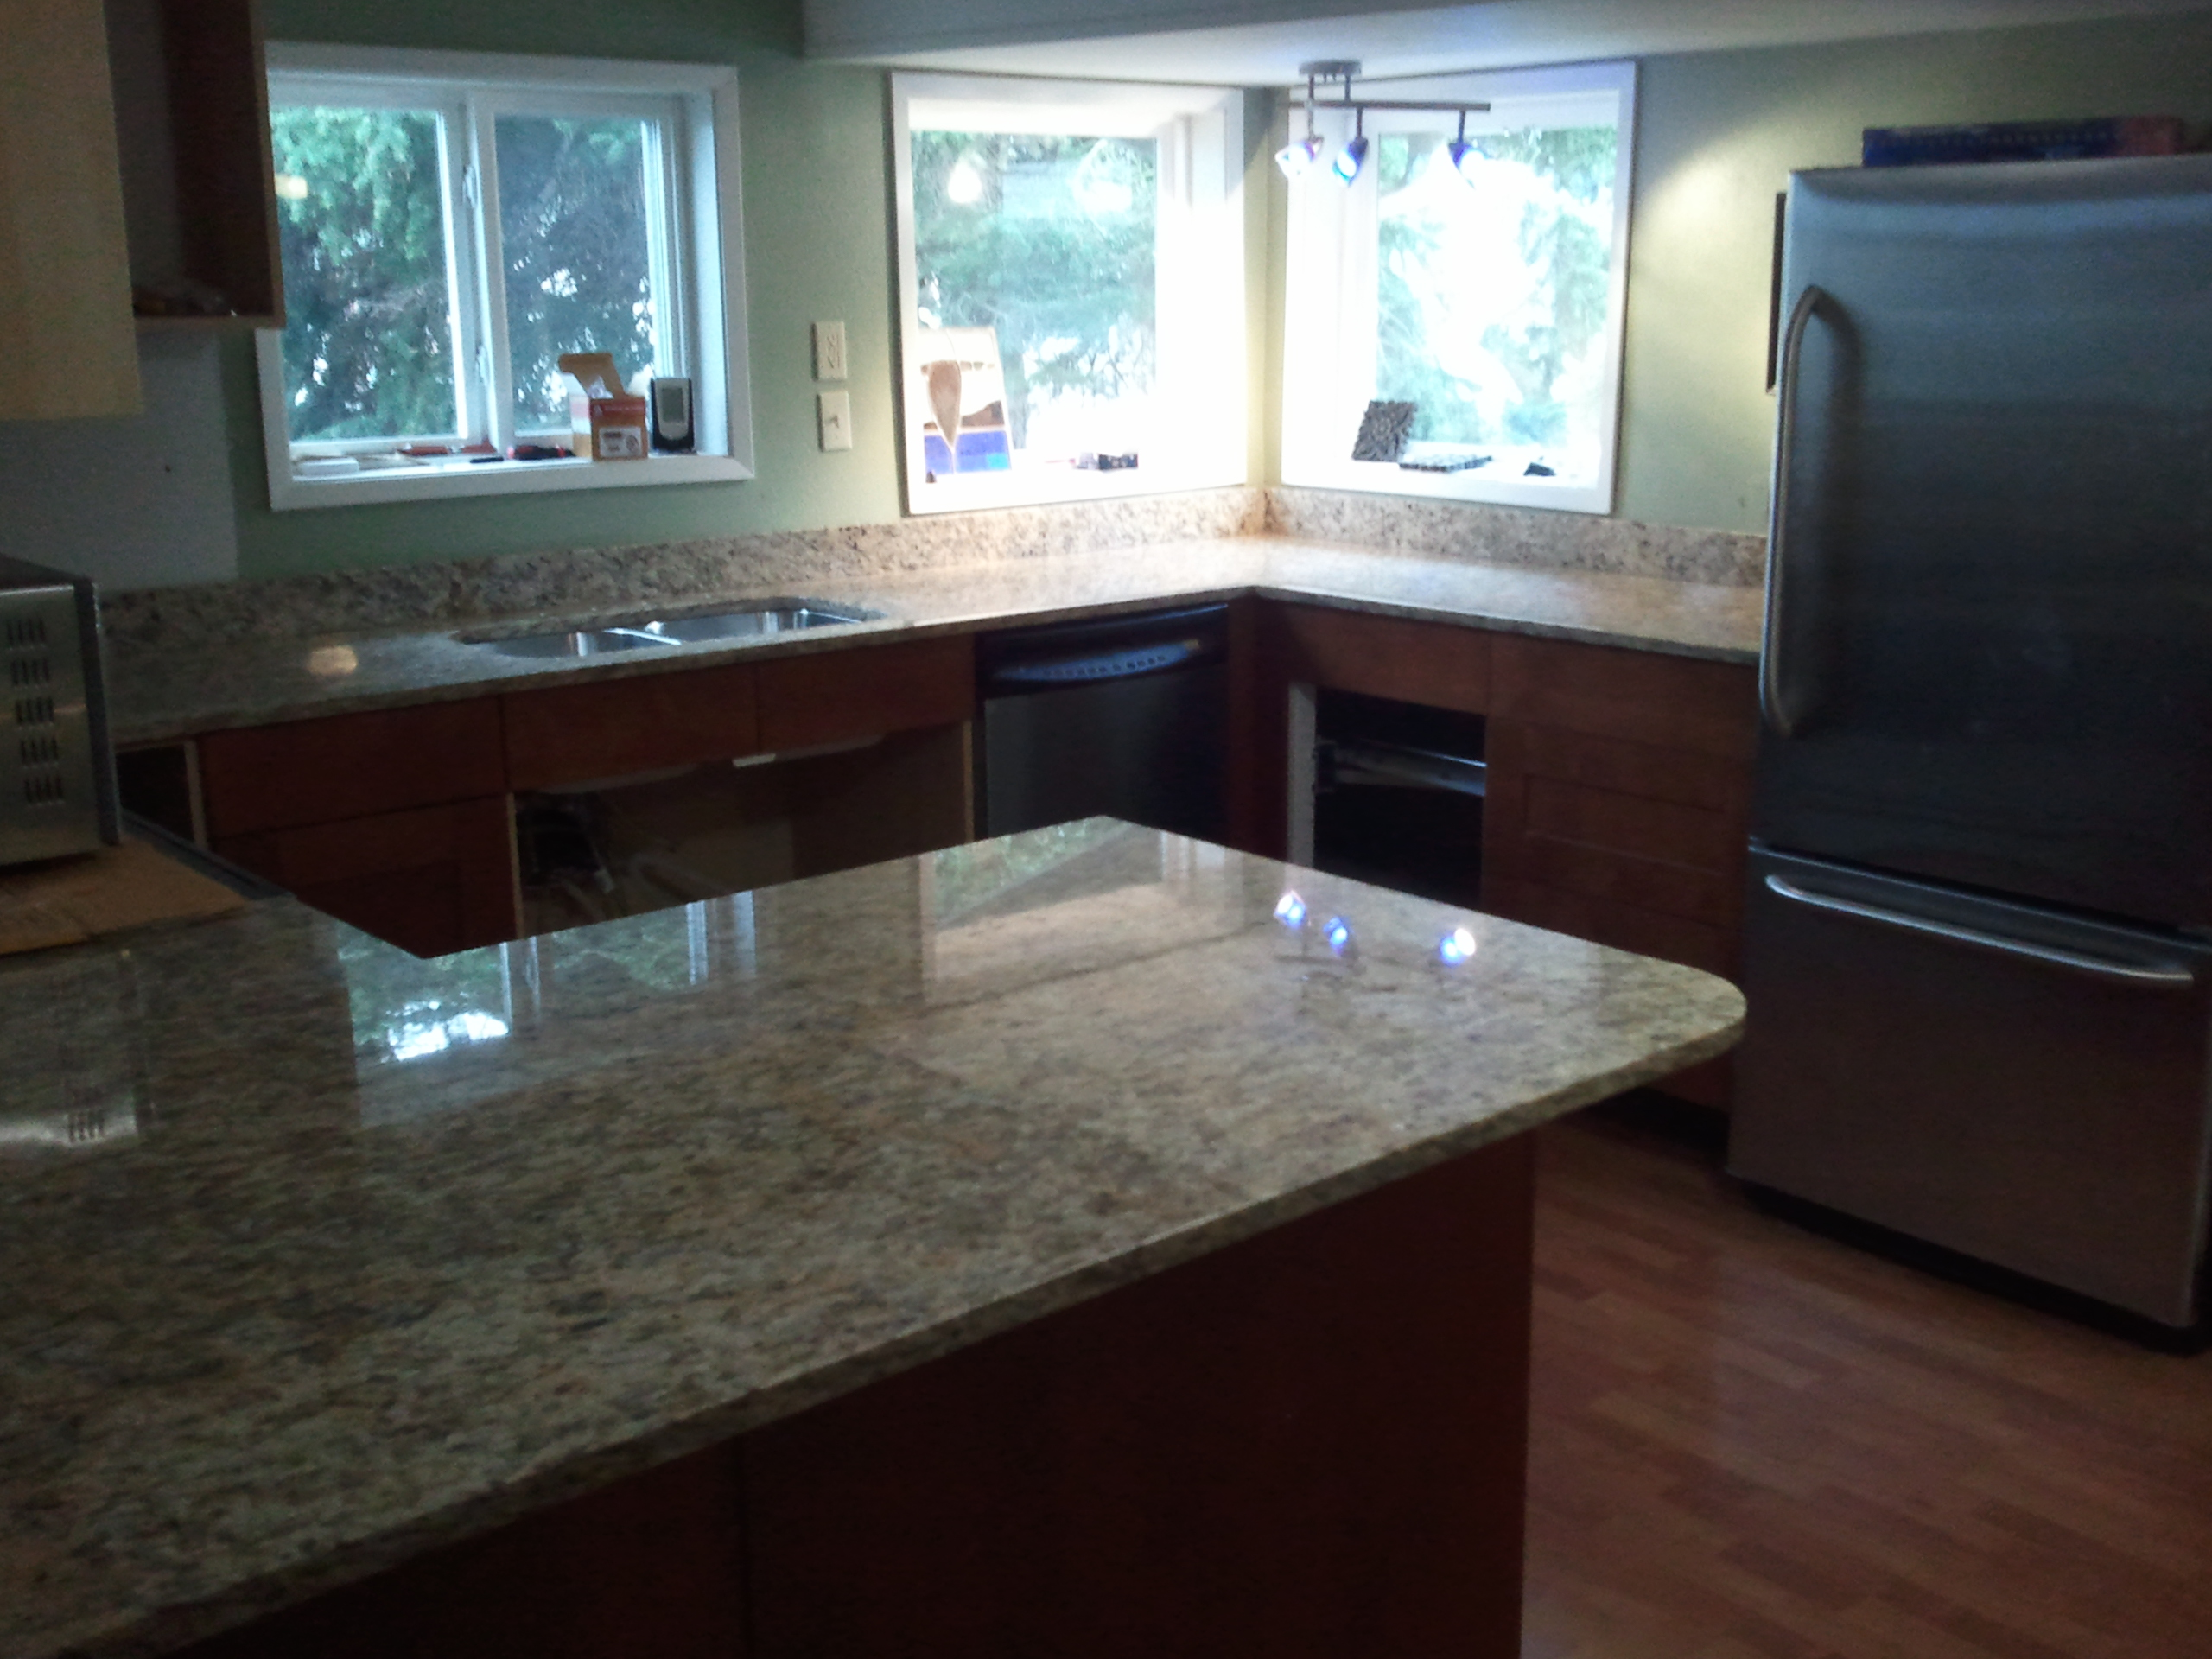 of ideas granite countertops installed countertop full size island look discount vanity design tile kitchen contractors counter order cost white installation worktop